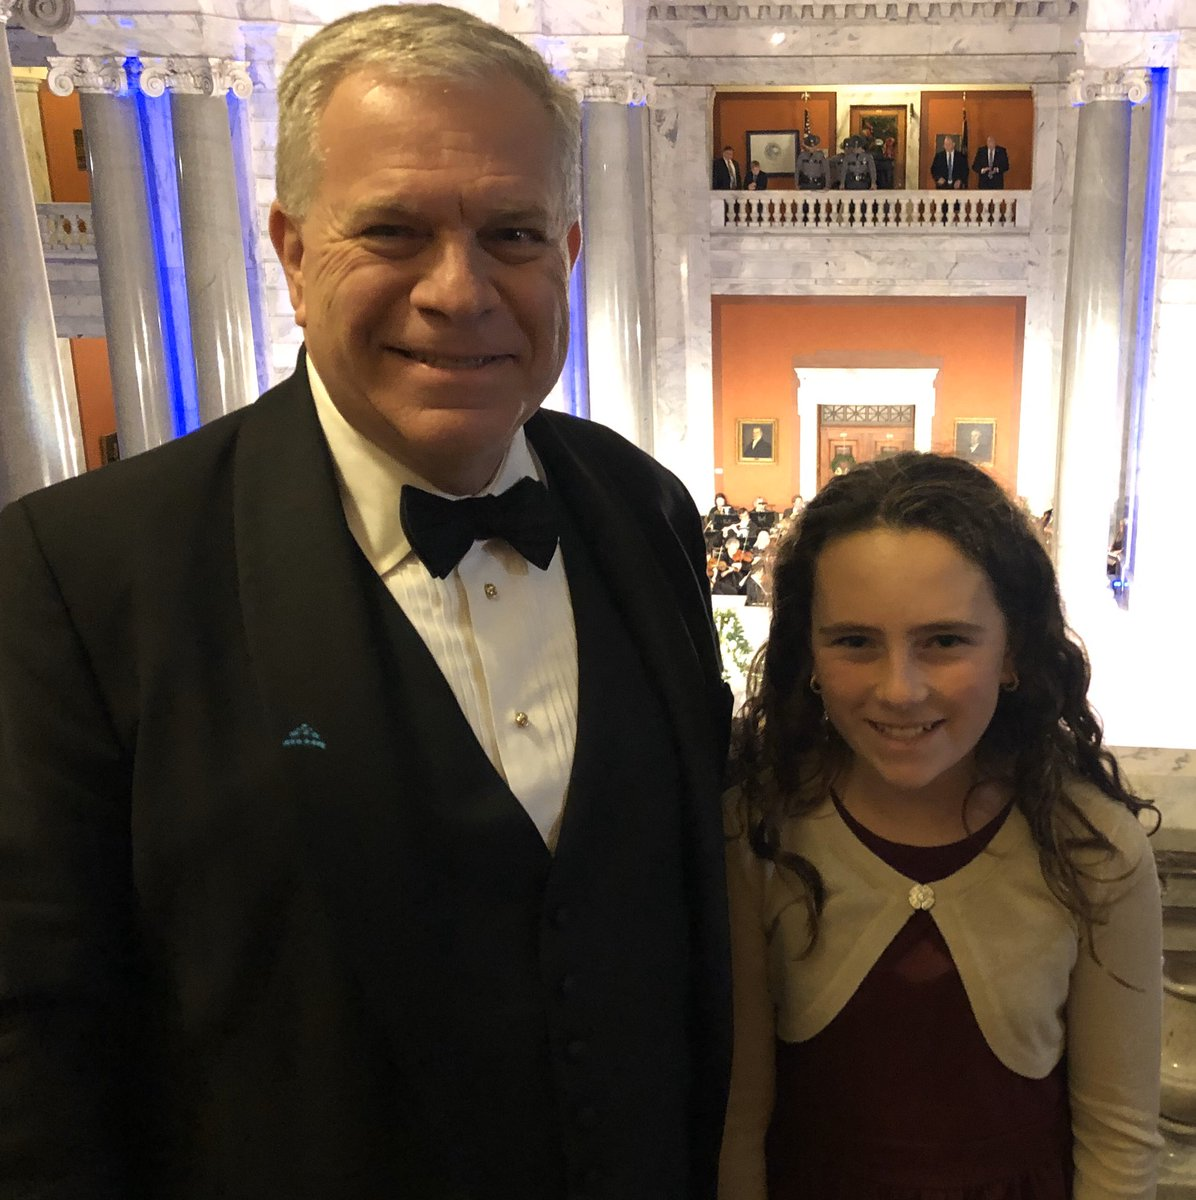 Traditional Grand March, elegant Inaugural Ball and beautiful date — granddaughter Raygan. This perfect day ended...perfectly! Thanks @GovAndyBeshear and the people of @visitfrankfort for rolling out the red carpet.  Tomorrow we get to work for #TeamKentucky #BelleoftheBall